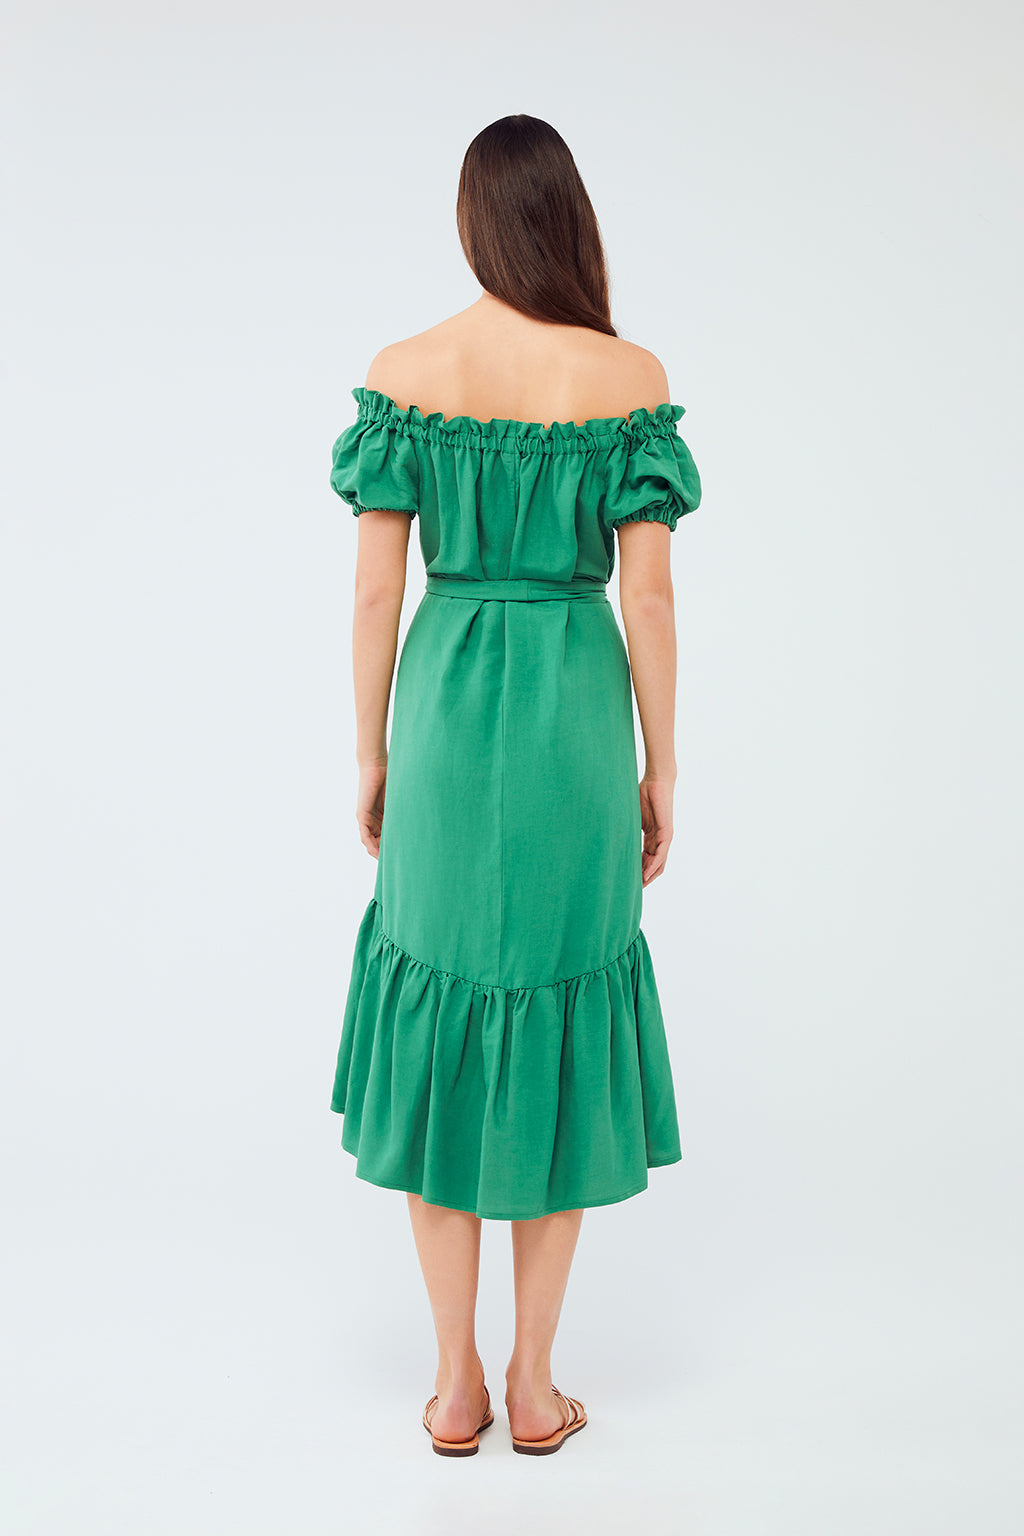 Wildwood - Gueliz Dress | Green